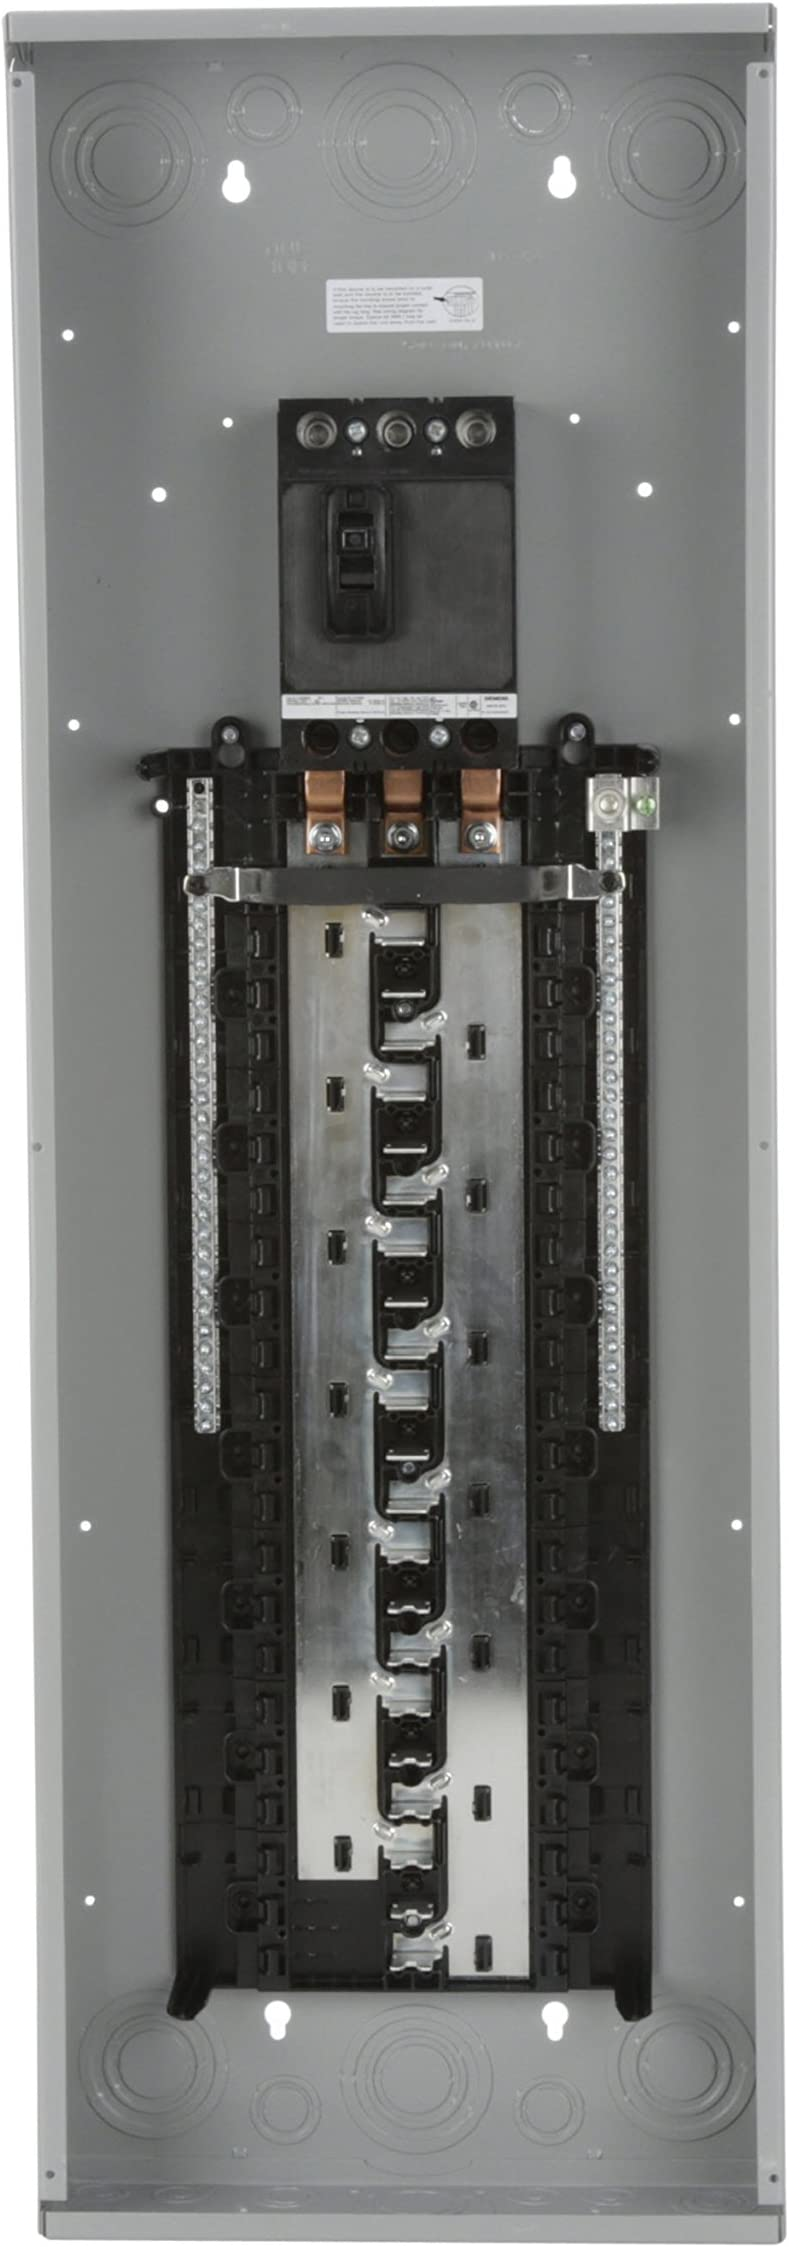 Circuit Breaker Panel Box Siemens ES 200A Load Center SW1224L3200 NEW